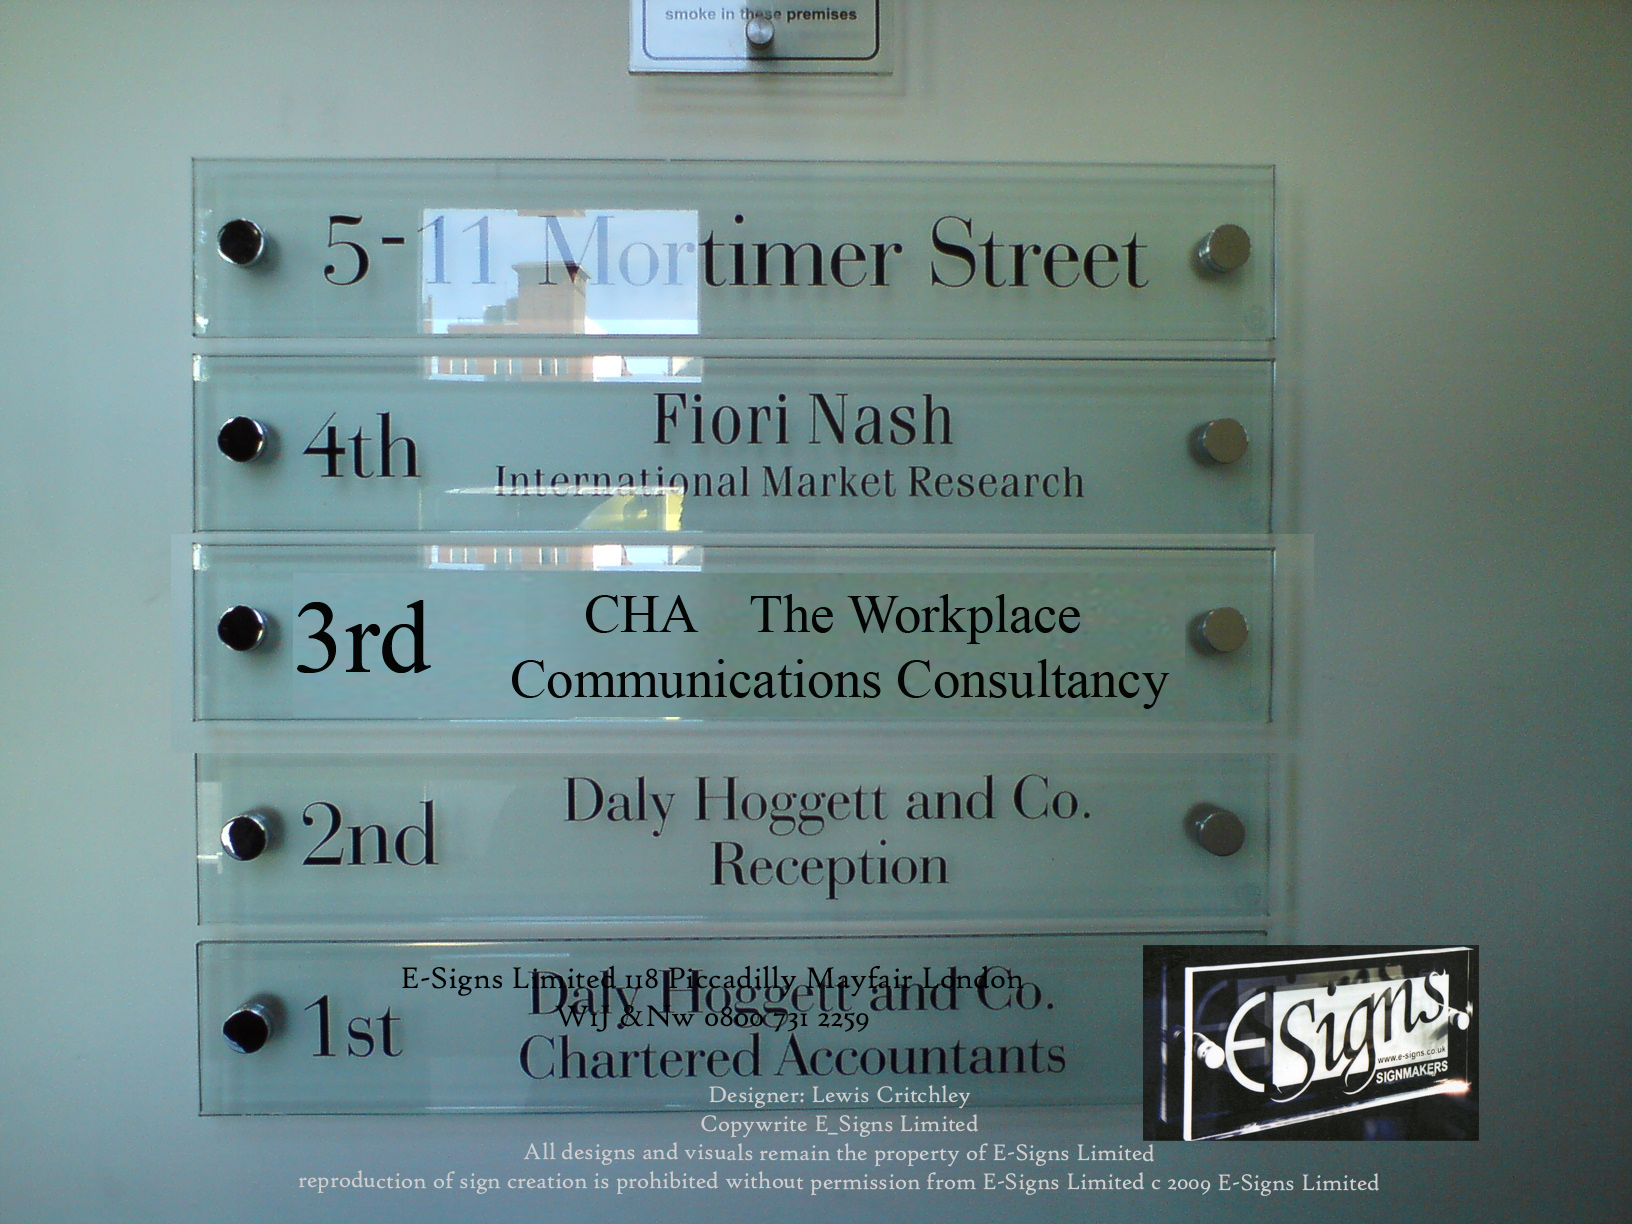 signage for Westminster City Council, BIS , IPO , BArclays, HSBC E.on supplied by www.e-signs.co.uk slatz sign v1